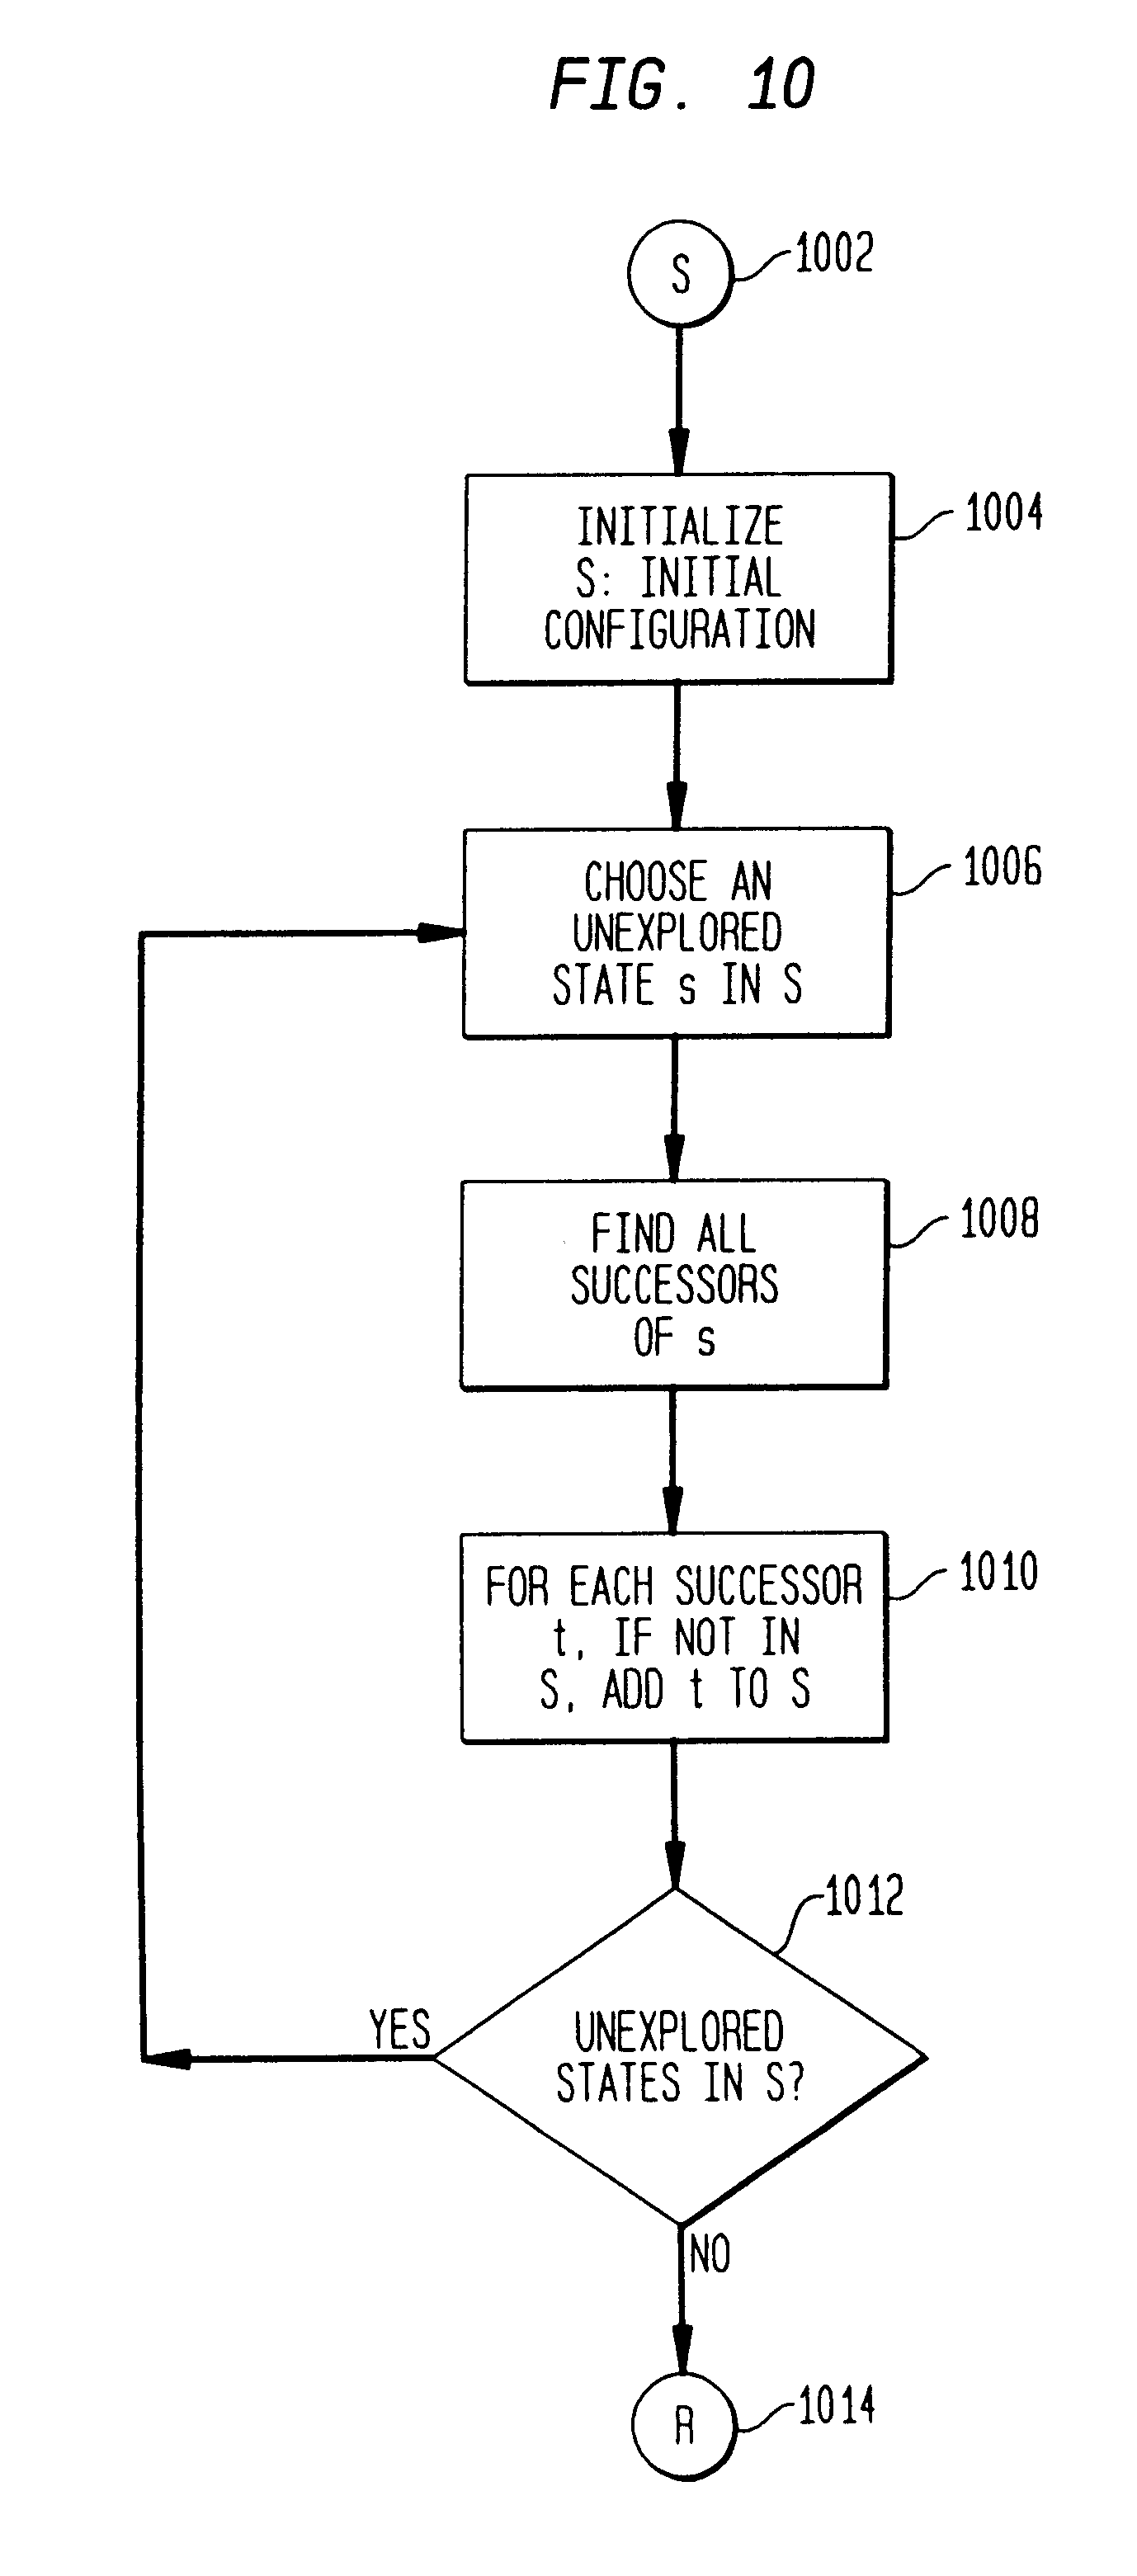 synchronous and asynchronous message in sequence diagram electron dot for potassium patent us6516306 model checking of flow diagrams